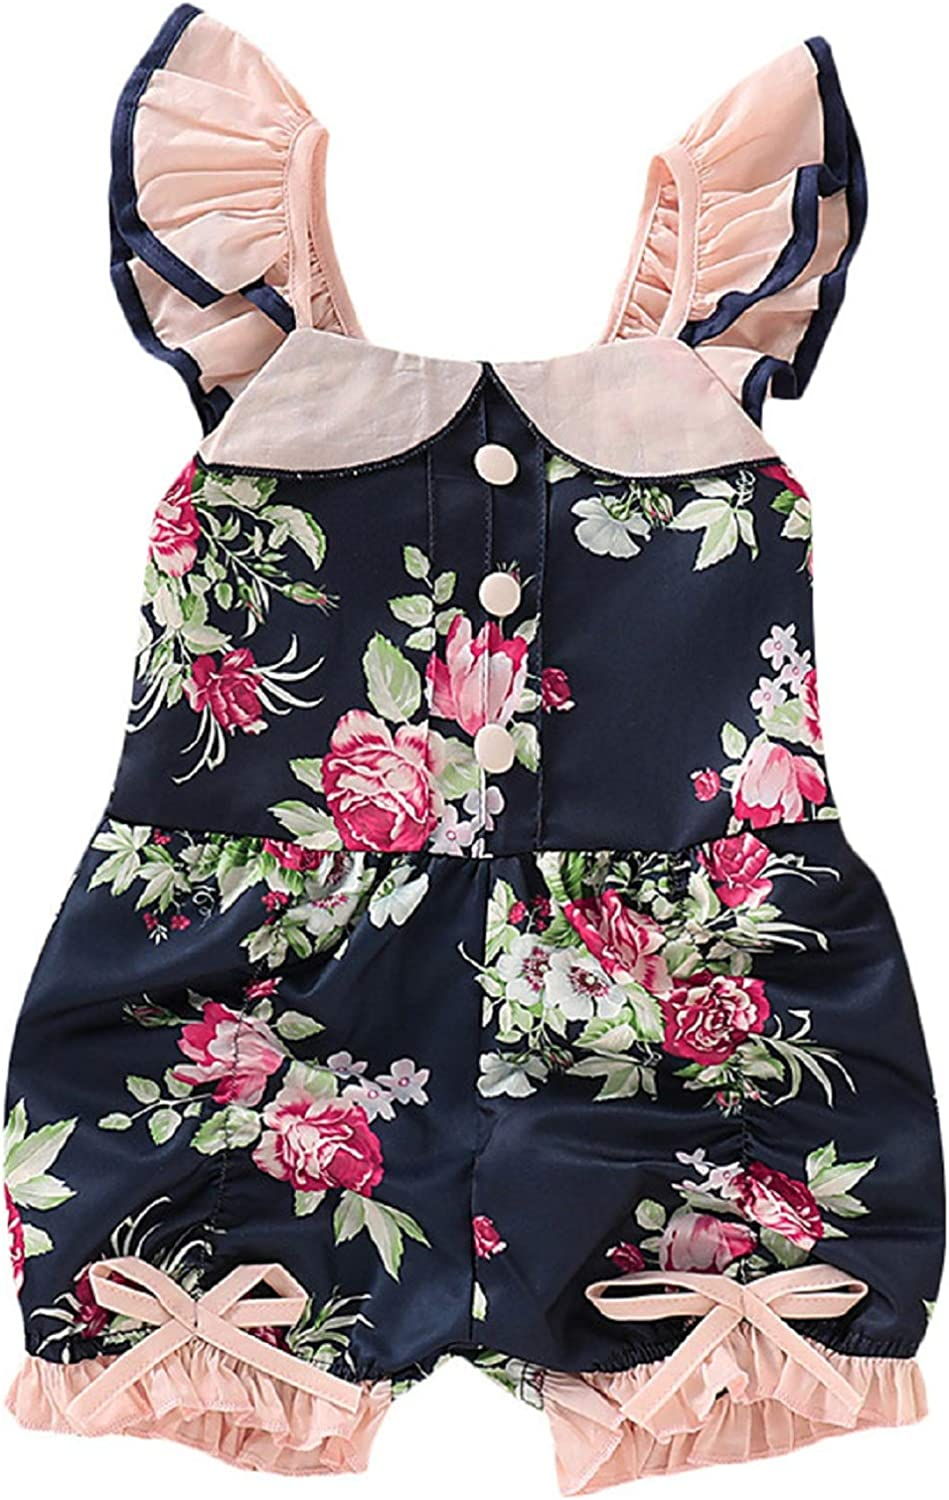 Fyhuzp Infant Baby Girl Romper Bodysuit Toddler Newborn Ruffles Floral Jumpsuits Outfit Summer Flower Clothes